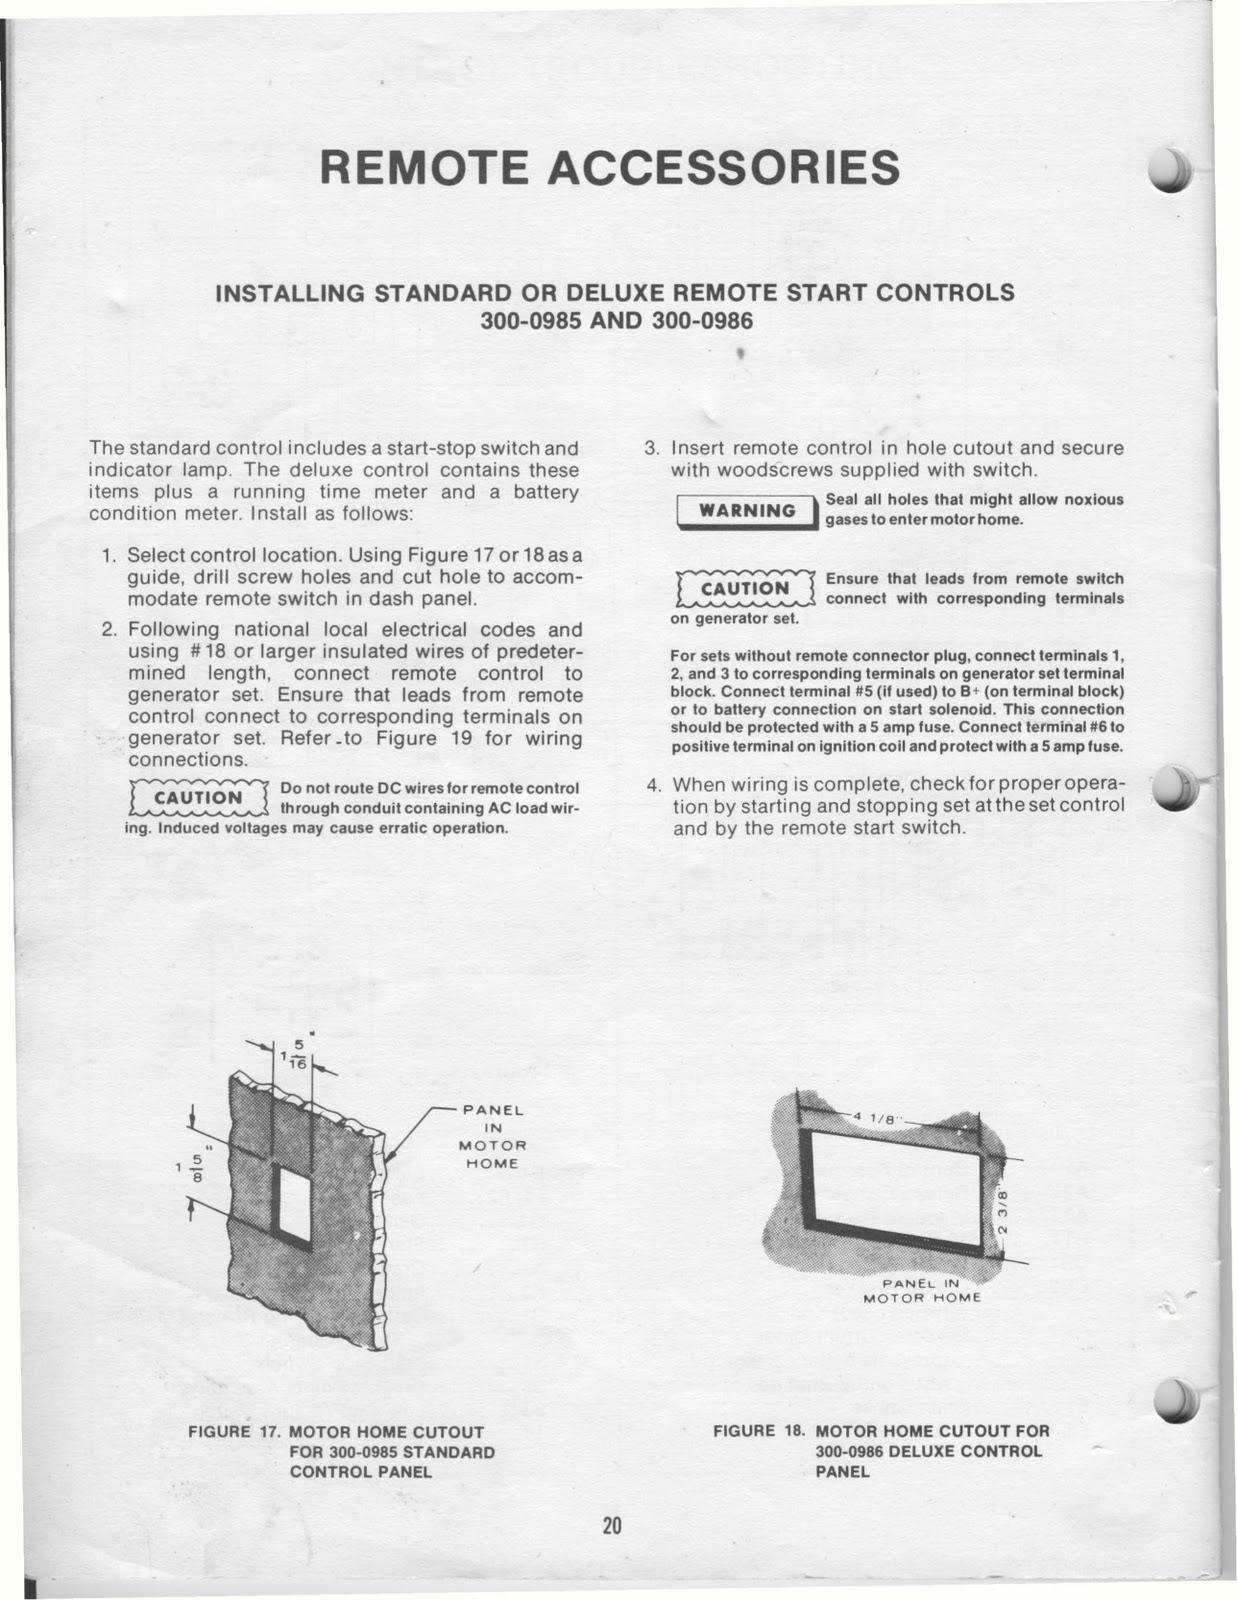 onan 4 0 kw bfa genset operators manual posted by vintage travel trailers at 11 19 am [ 1237 x 1600 Pixel ]